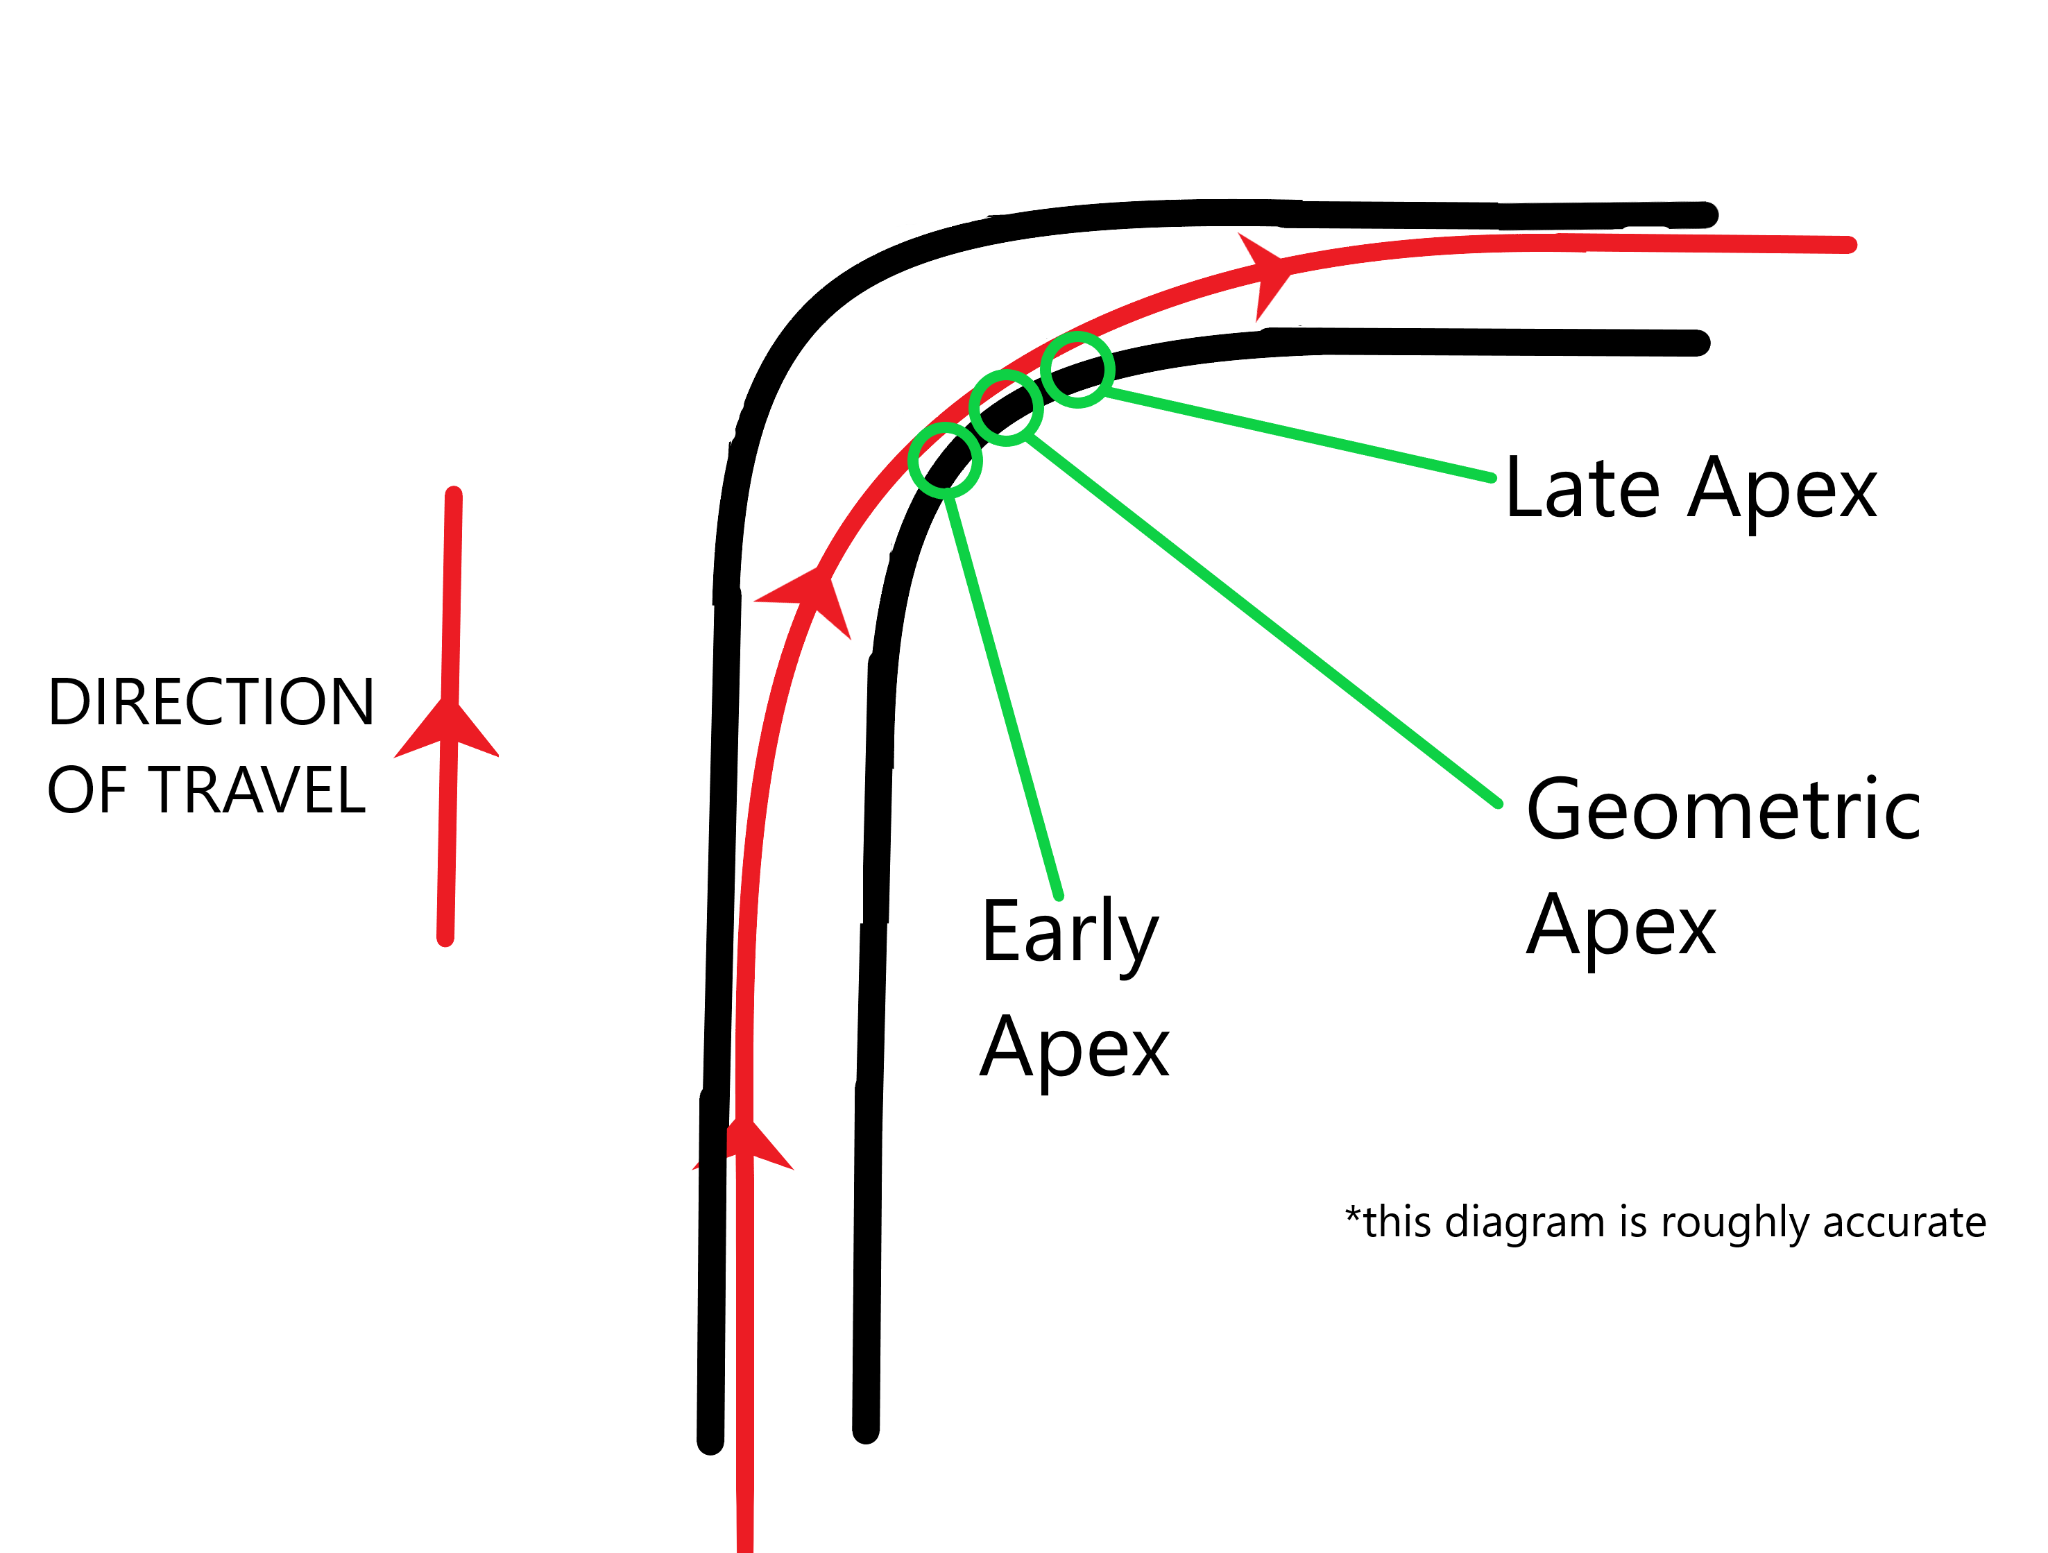 diagram showing early, geometric, and late apex